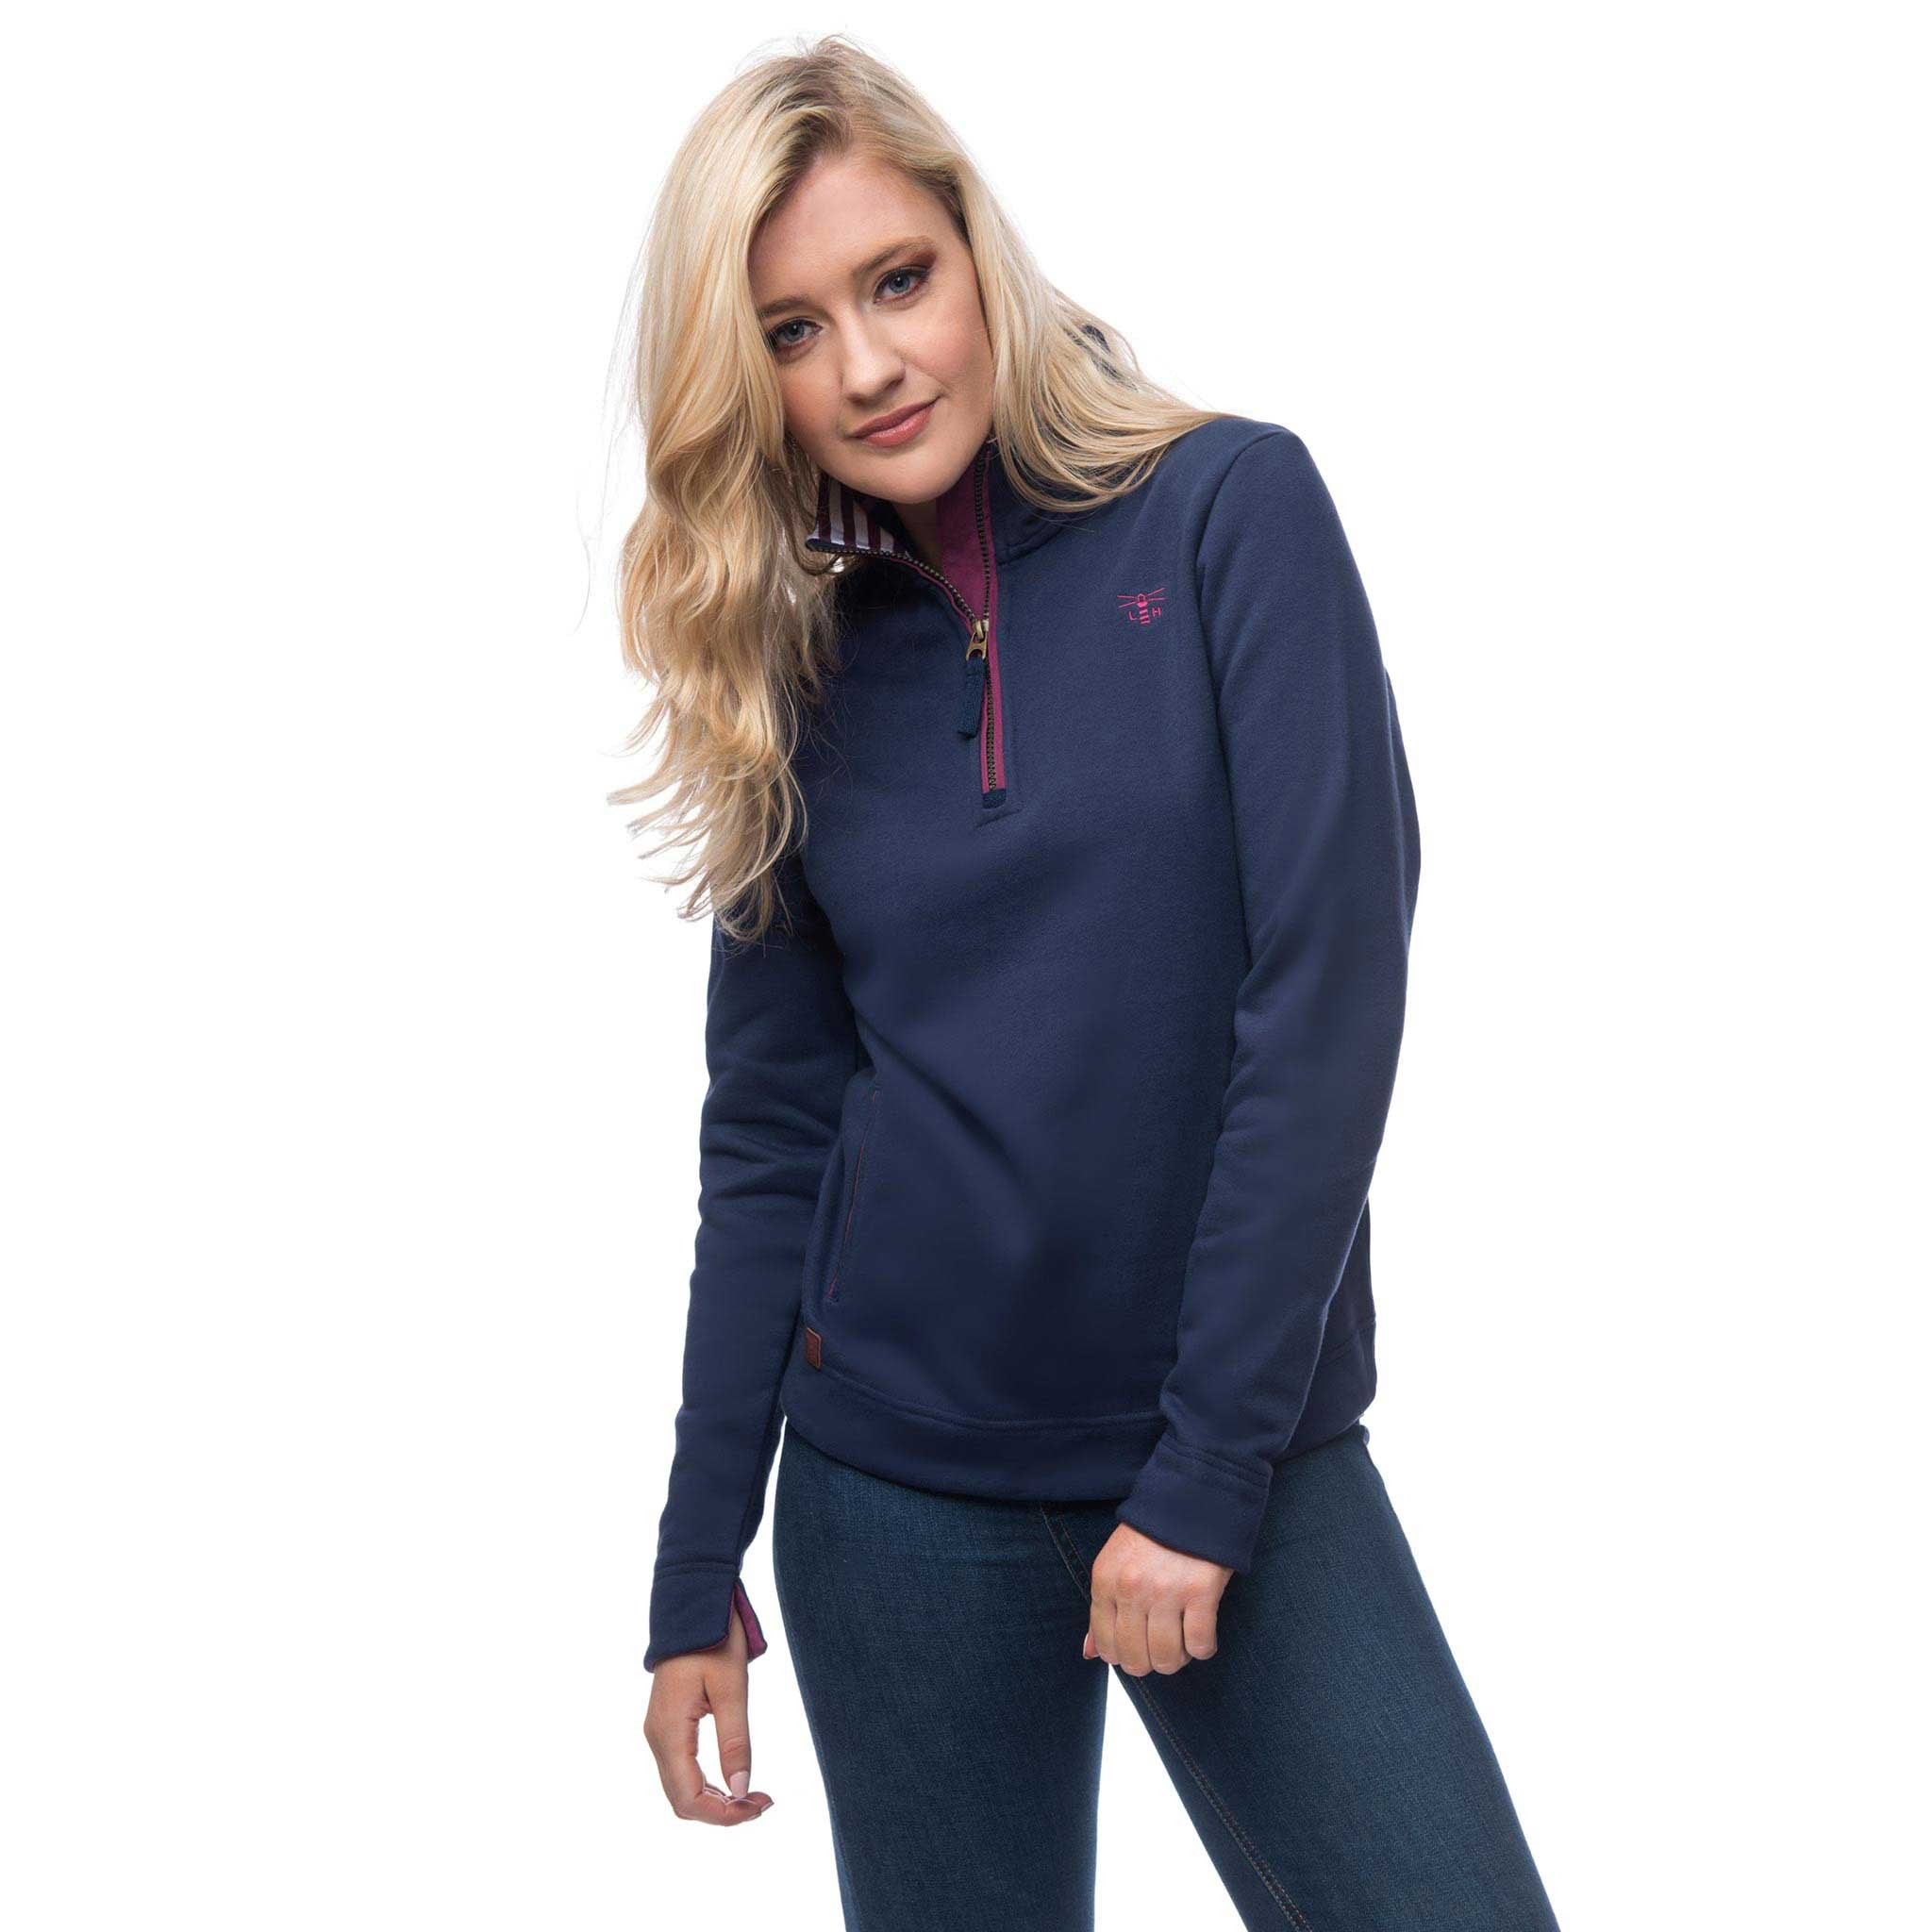 Lighthouse Womens Skye Half Zip Cotton Sweatshirt in Navy.